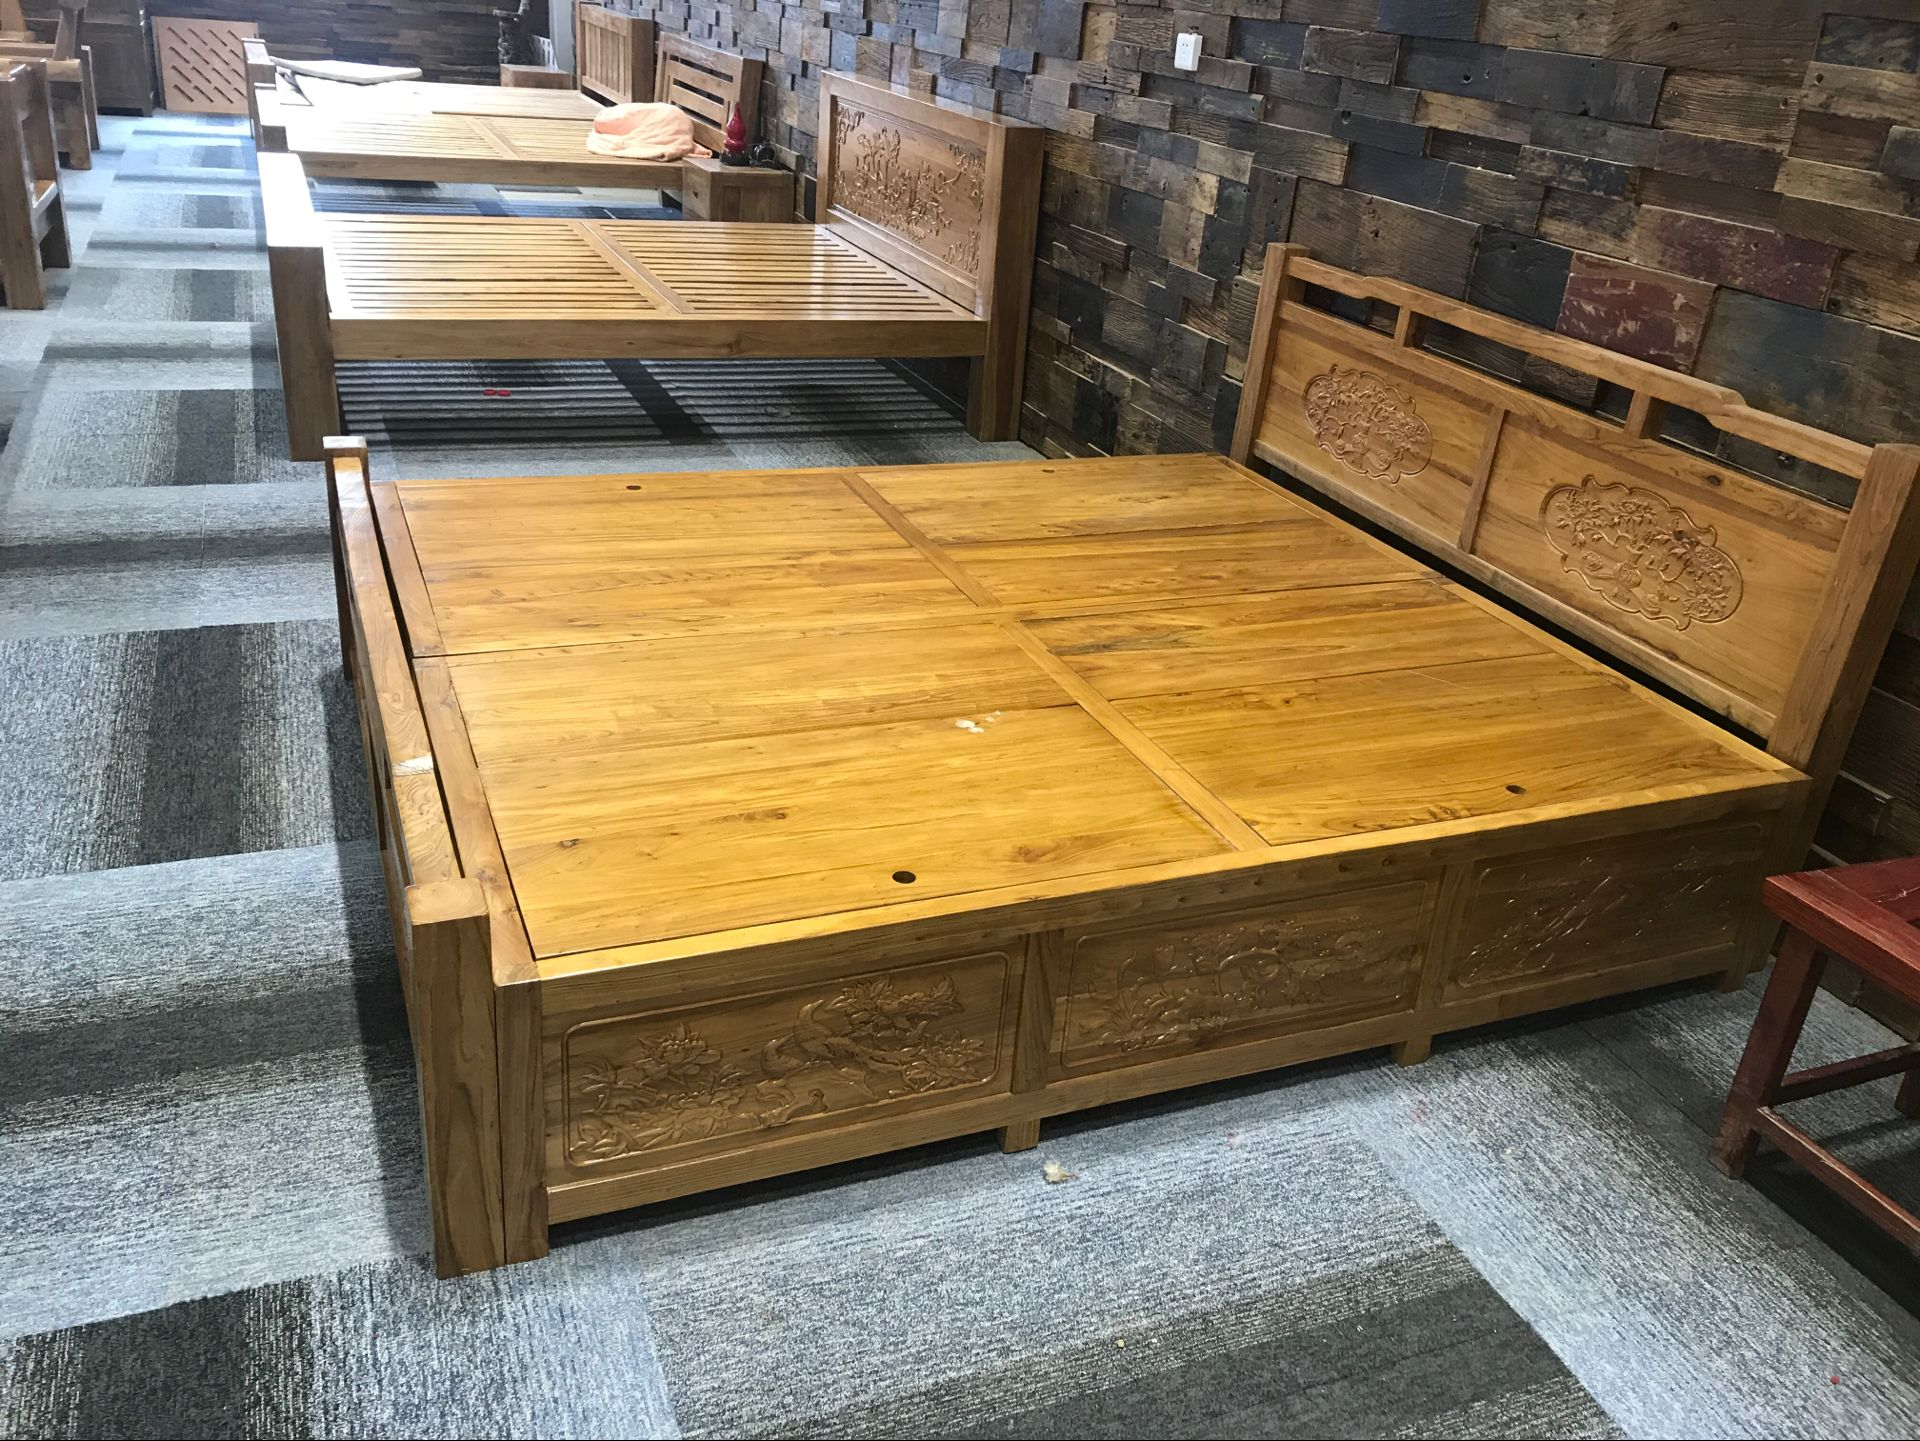 The old elm furniture double bed solid wood bed carved antique Ming and Qing furniture modern minimalist 1.8 meters